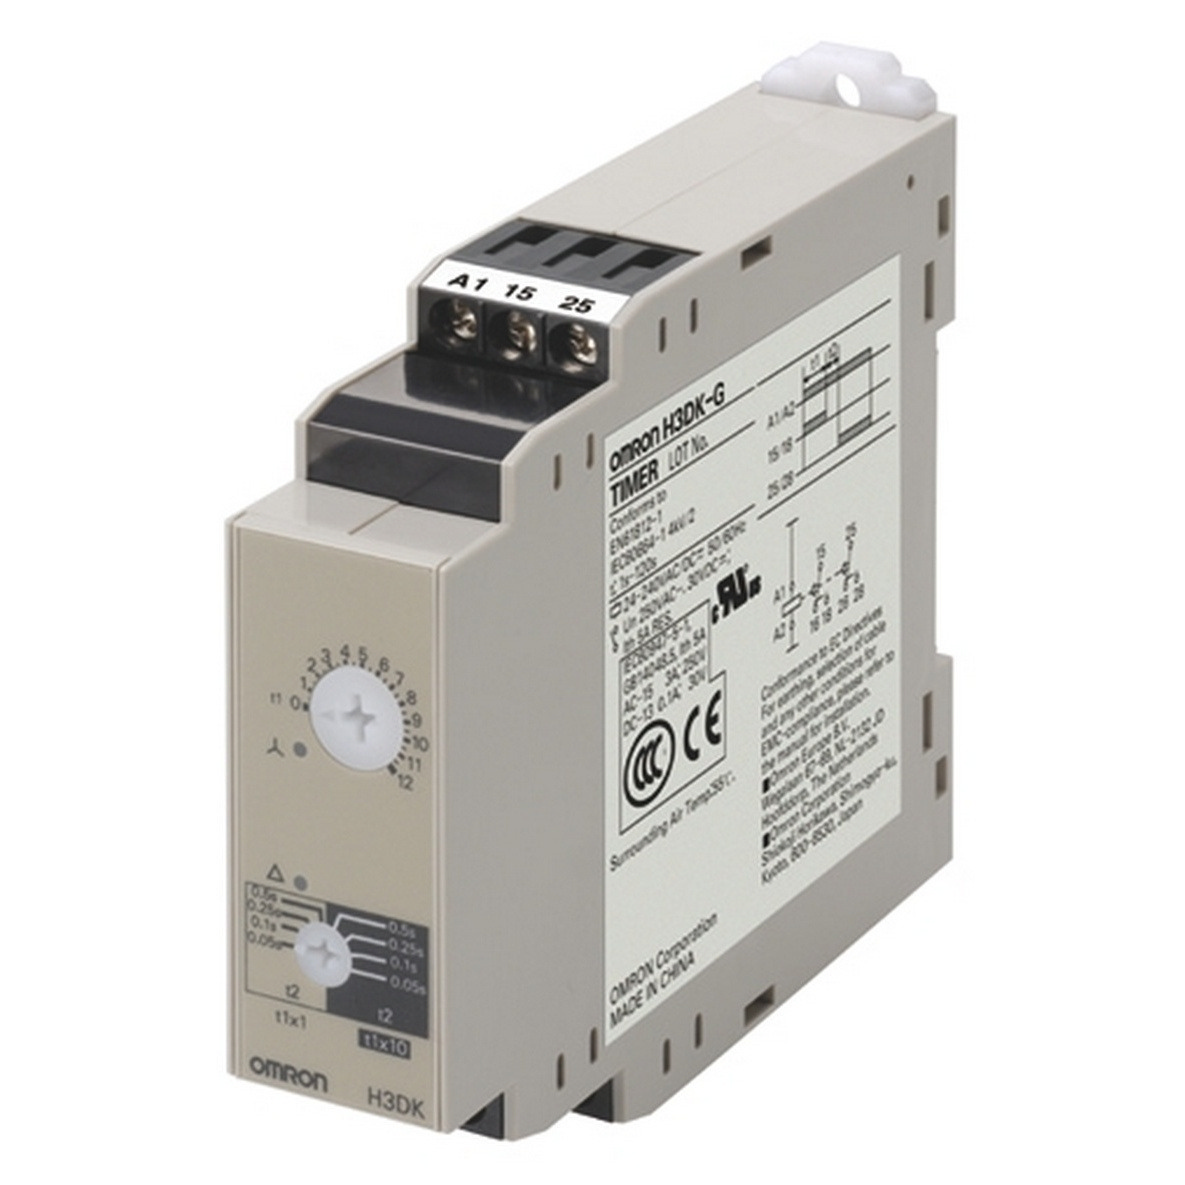 Timer, DIN rail mounting, 22.5mm, star-delta-delay, 1-120s, DPDT, 5 A, 240-440 VAC